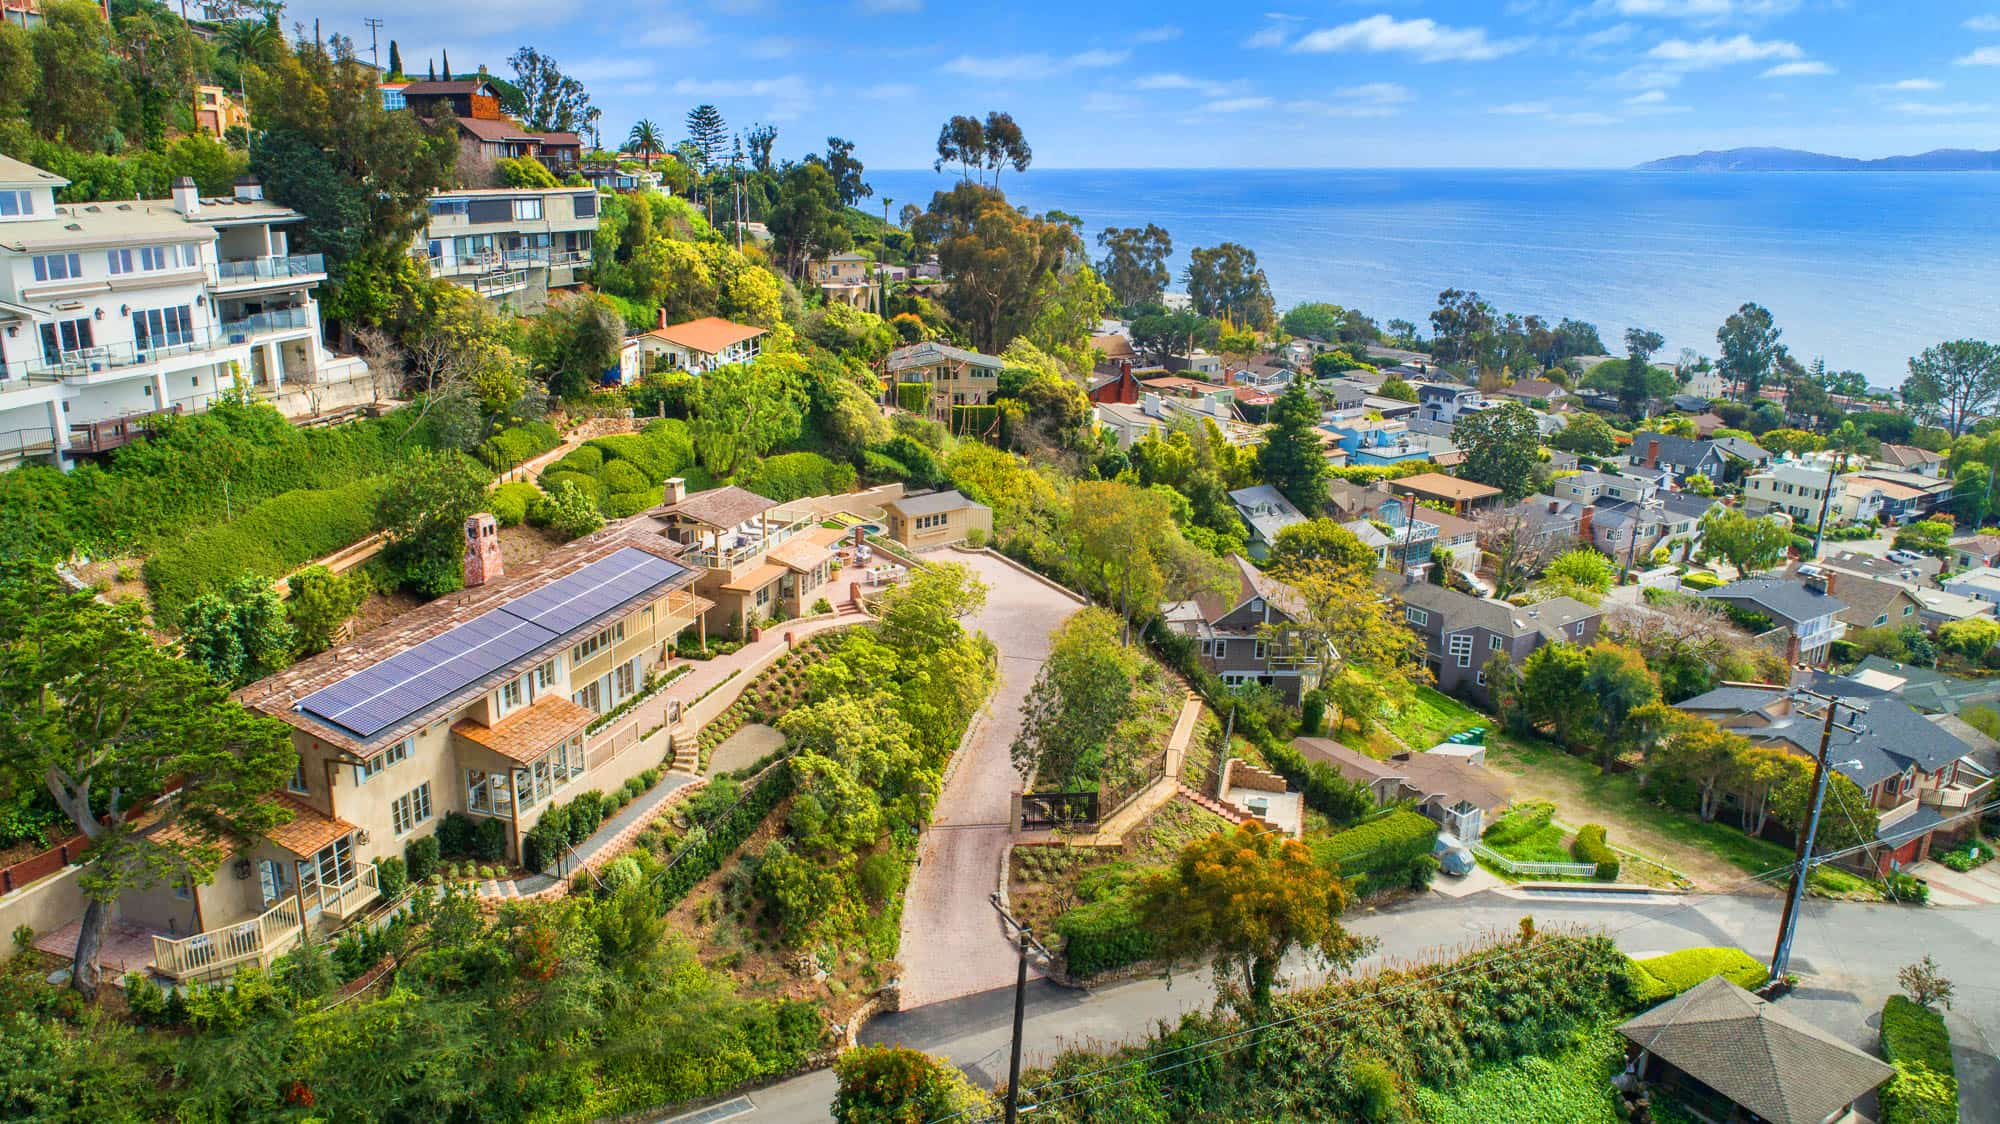 Exterior Aerial View Of 545 Diamond Street, Surrounded By Lush Landscaping Sitting On Ocean View Bluff.